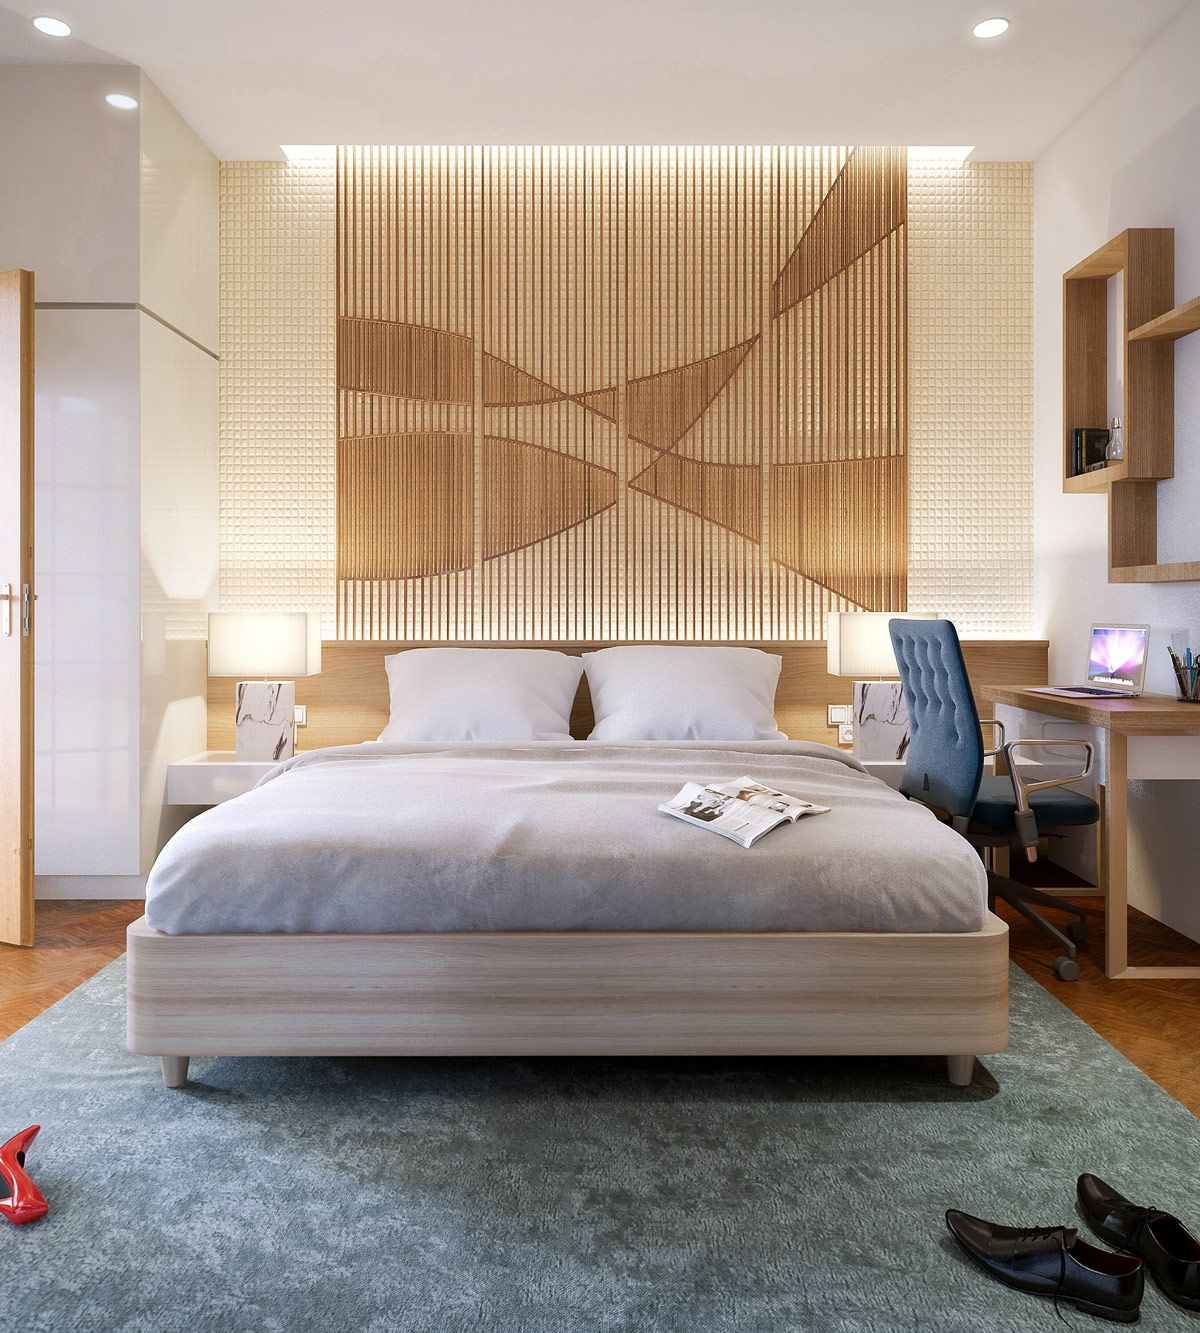 25 Beautiful Examples Of Bedroom Accent Walls That Use Slats To Look Awesome Kids Bedroom Remodel Accent Wall Bedroom Remodel Bedroom